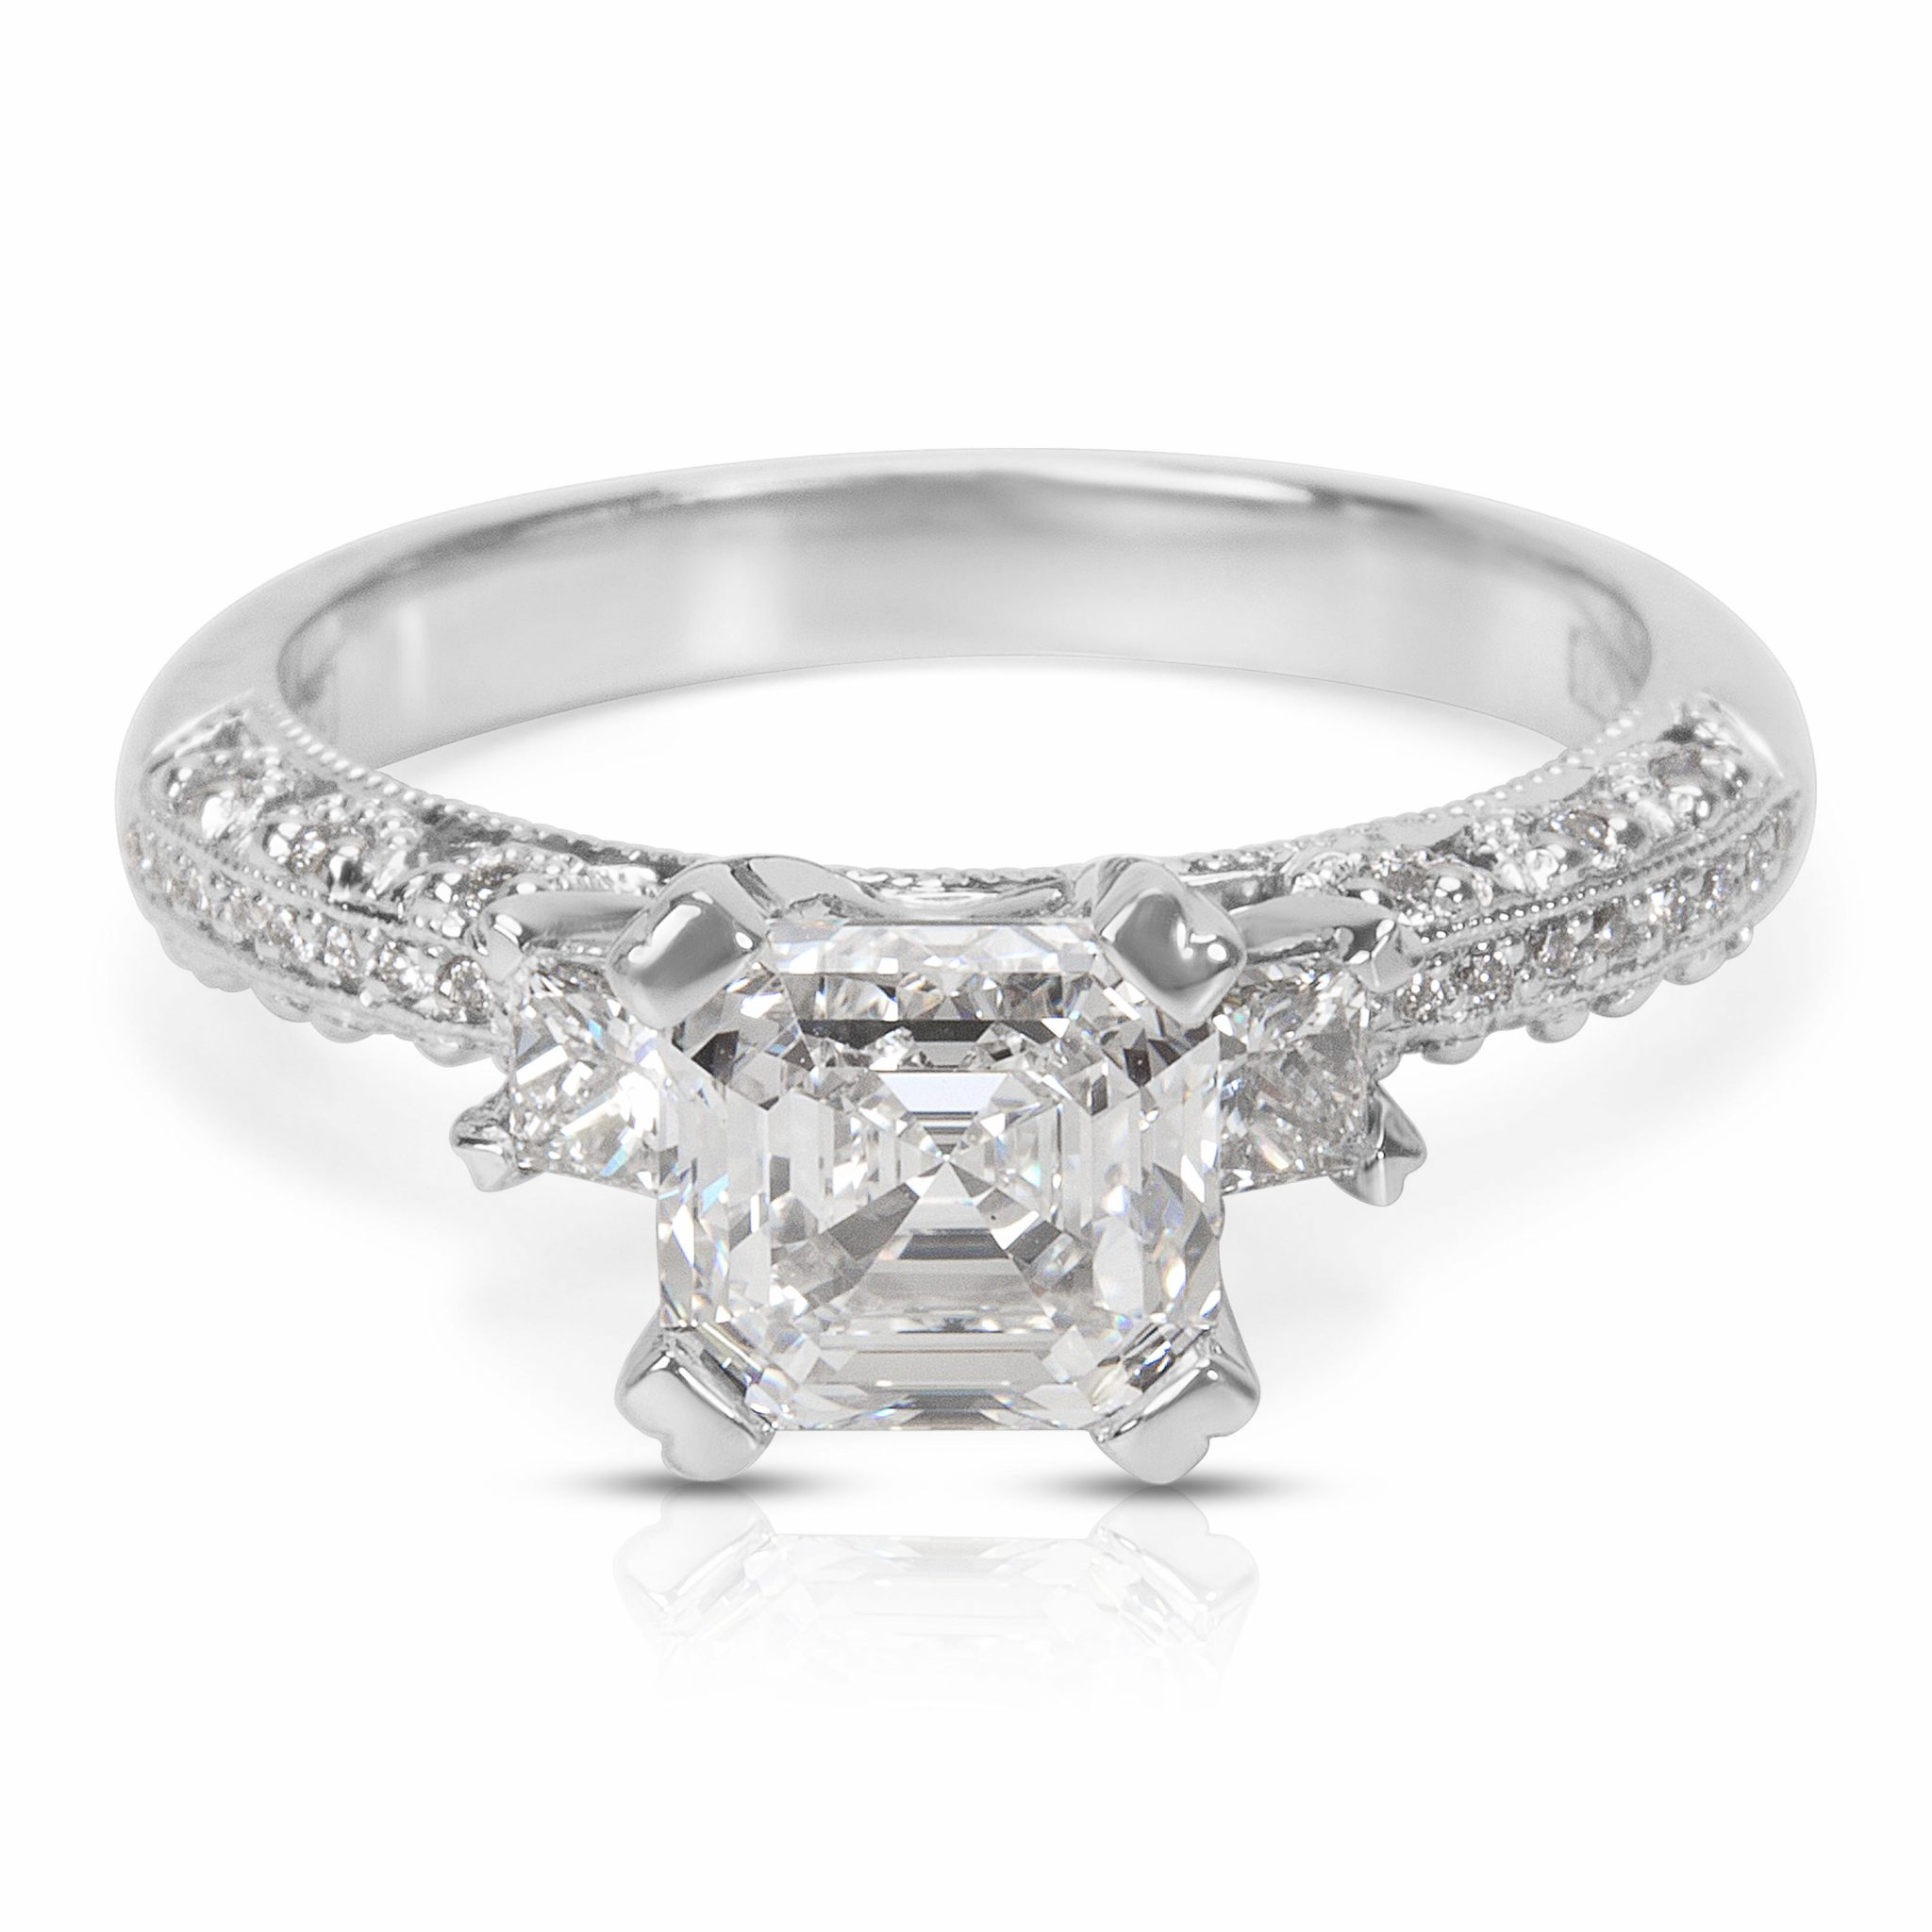 pinterest rings ring best engagement a promise on designers jaffe images wedding jewellery